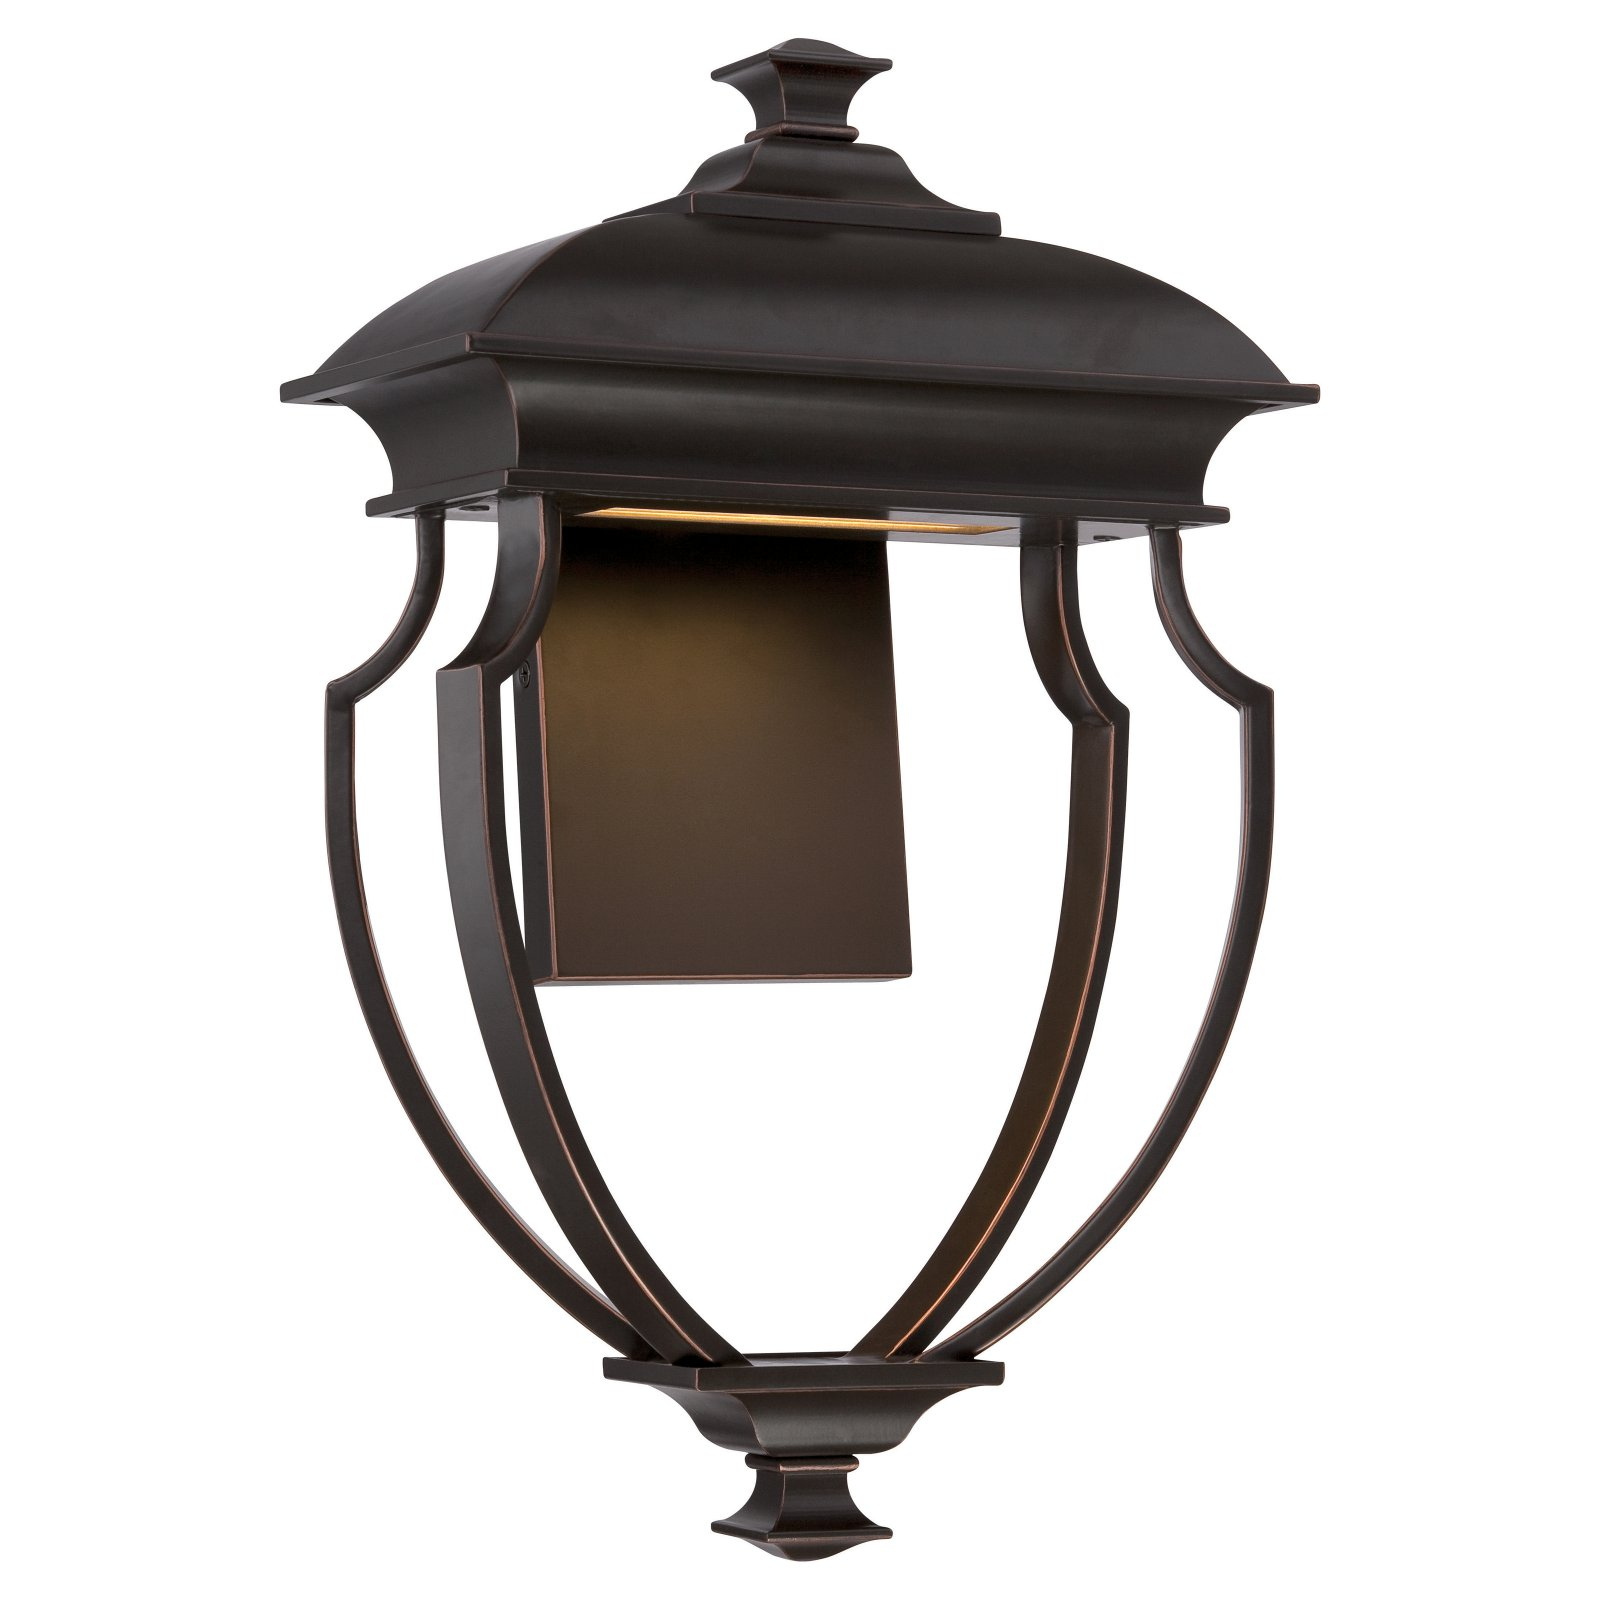 Nuvo Taft 62-623 Outdoor Wall Sconce